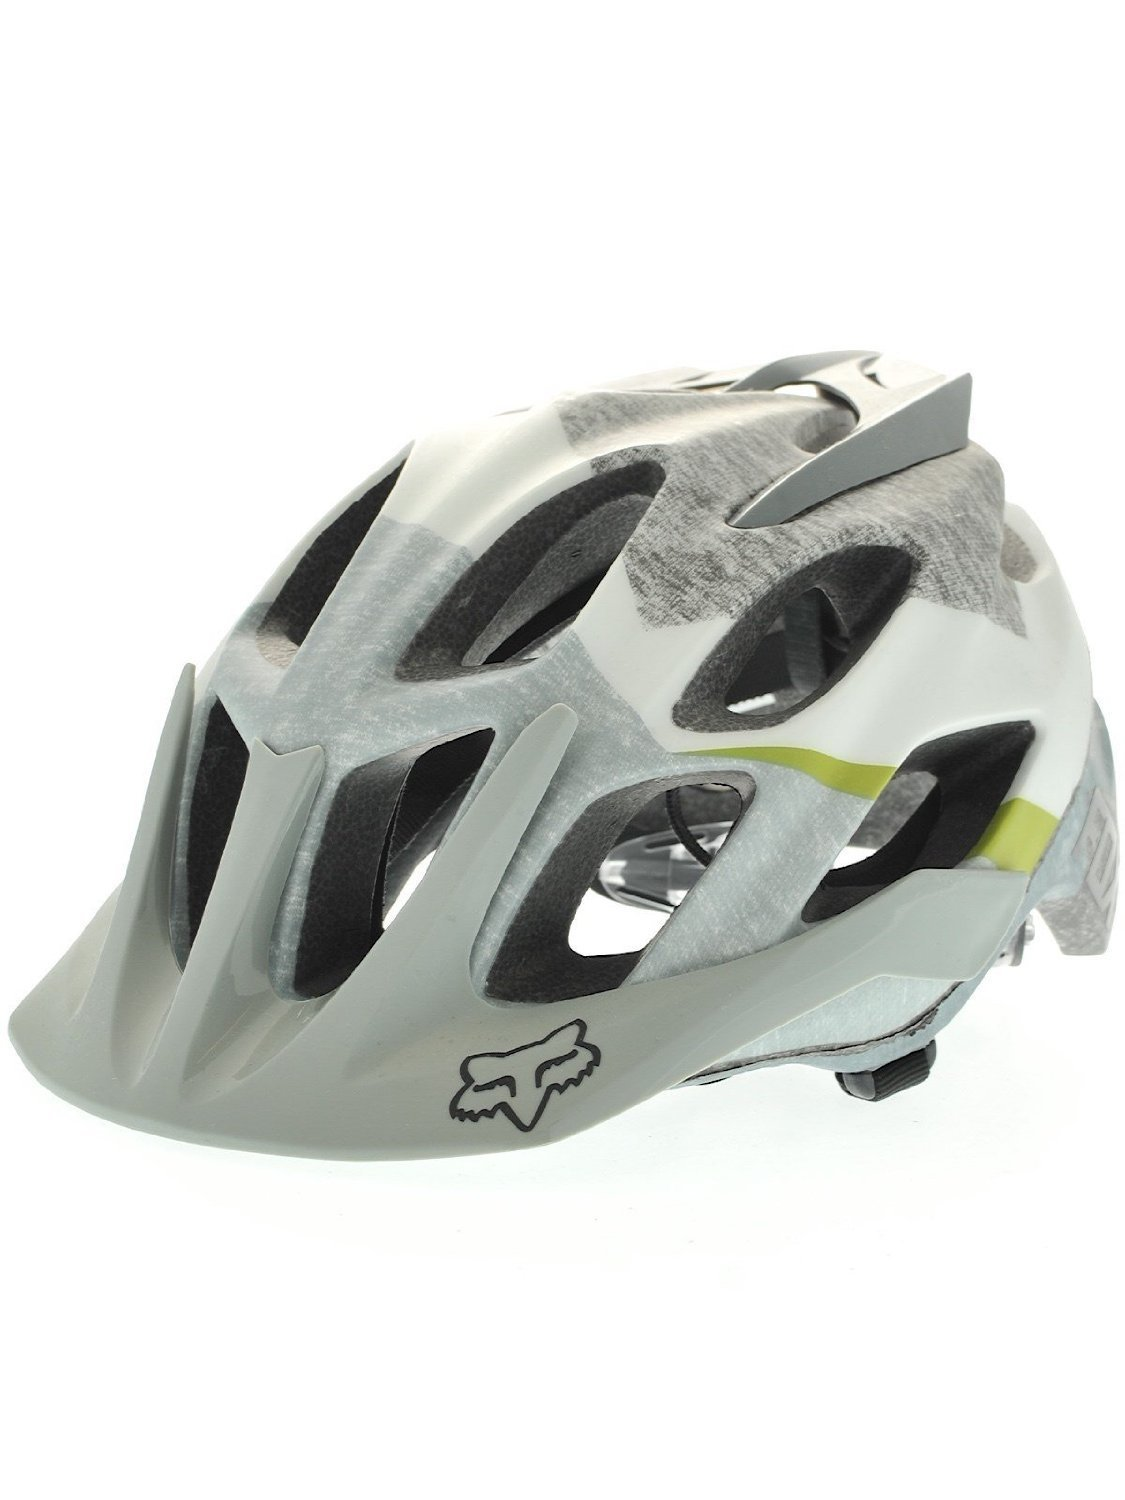 X-Large Fox Racing Bicycle Helmets